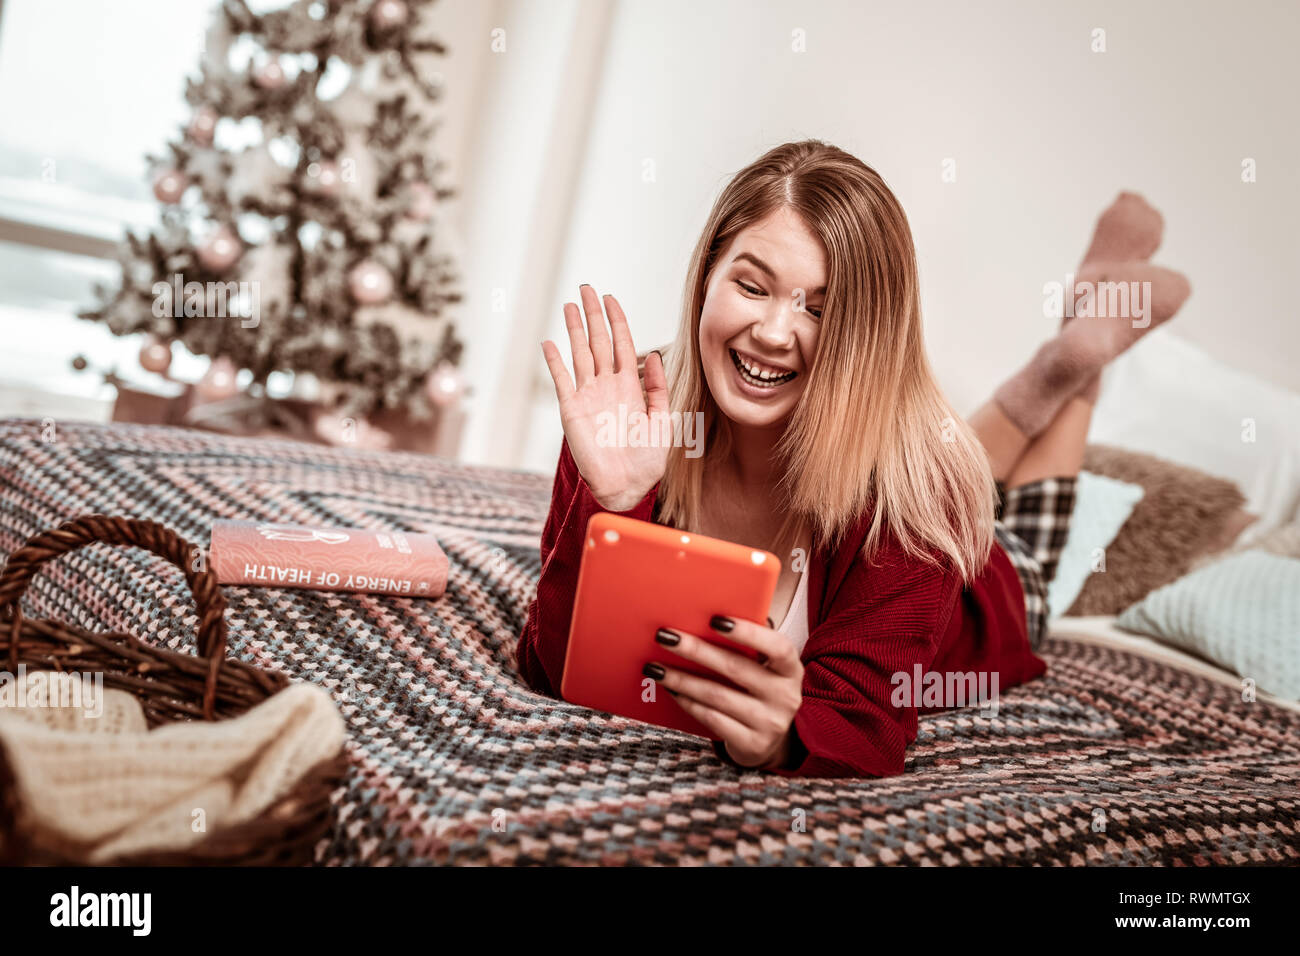 Coquettish young girl using tablet for video connection - Stock Image